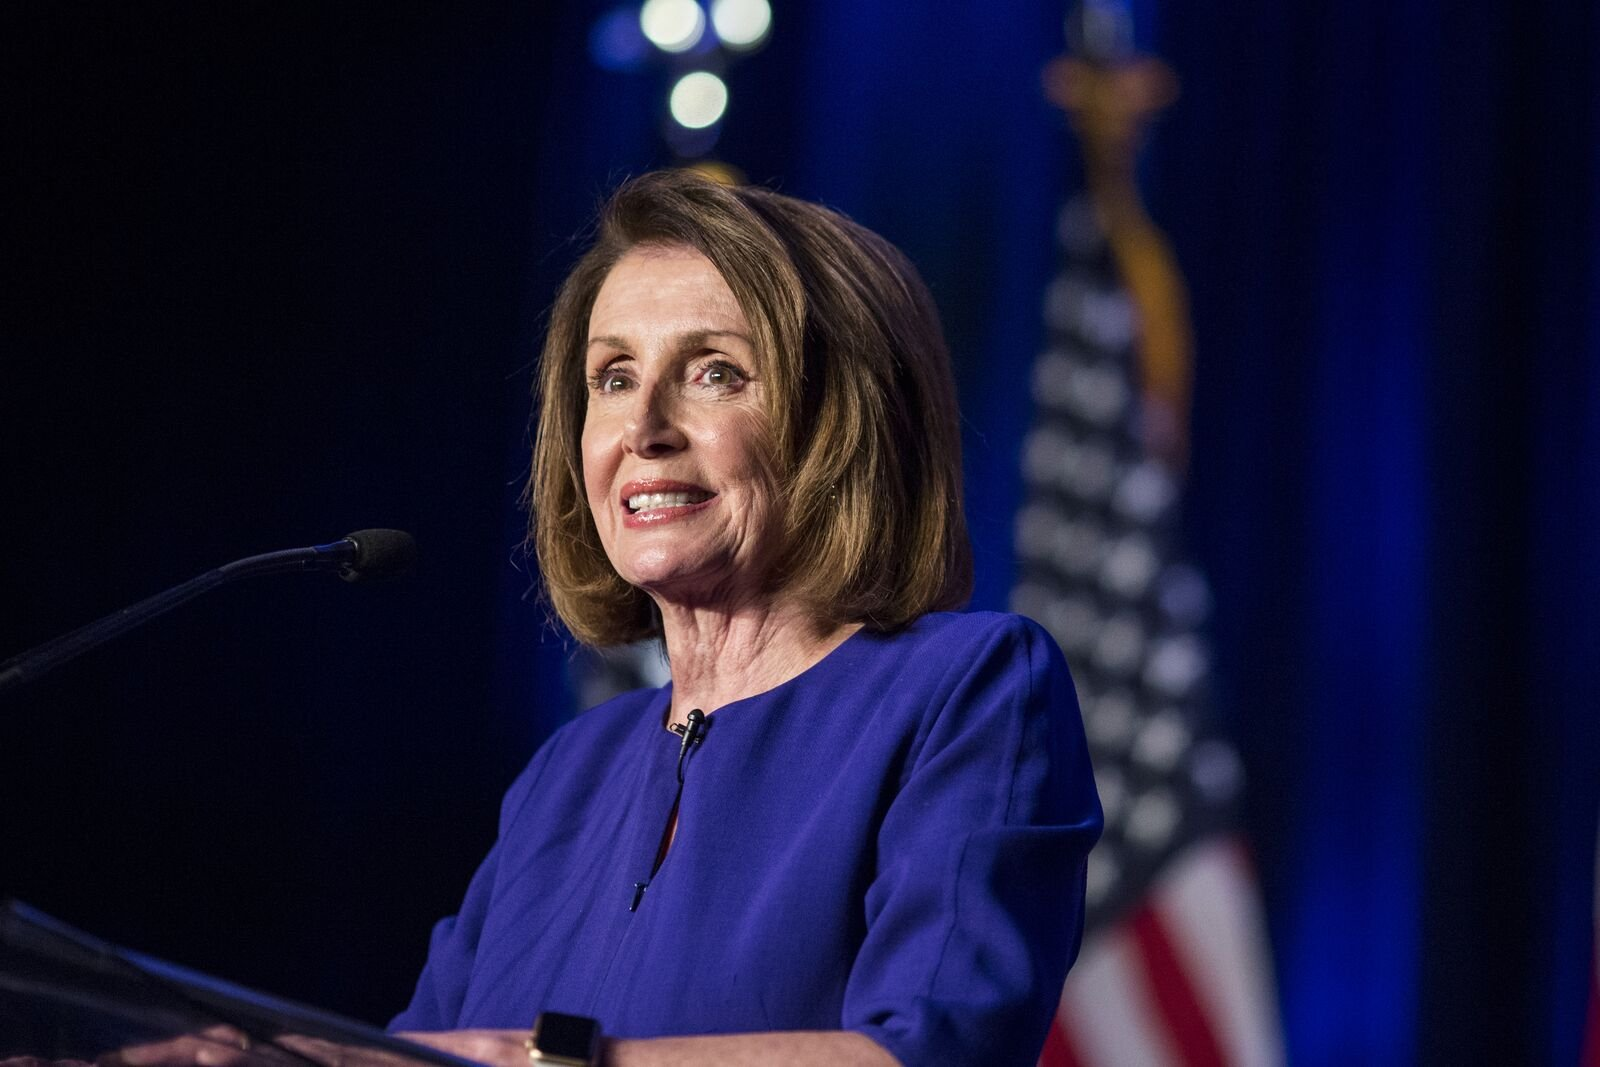 Nancy Pelosi at a DCCC election watch party on November 6, 2018, in Washington, DC. | Photo: Zach Gibson/Getty Images